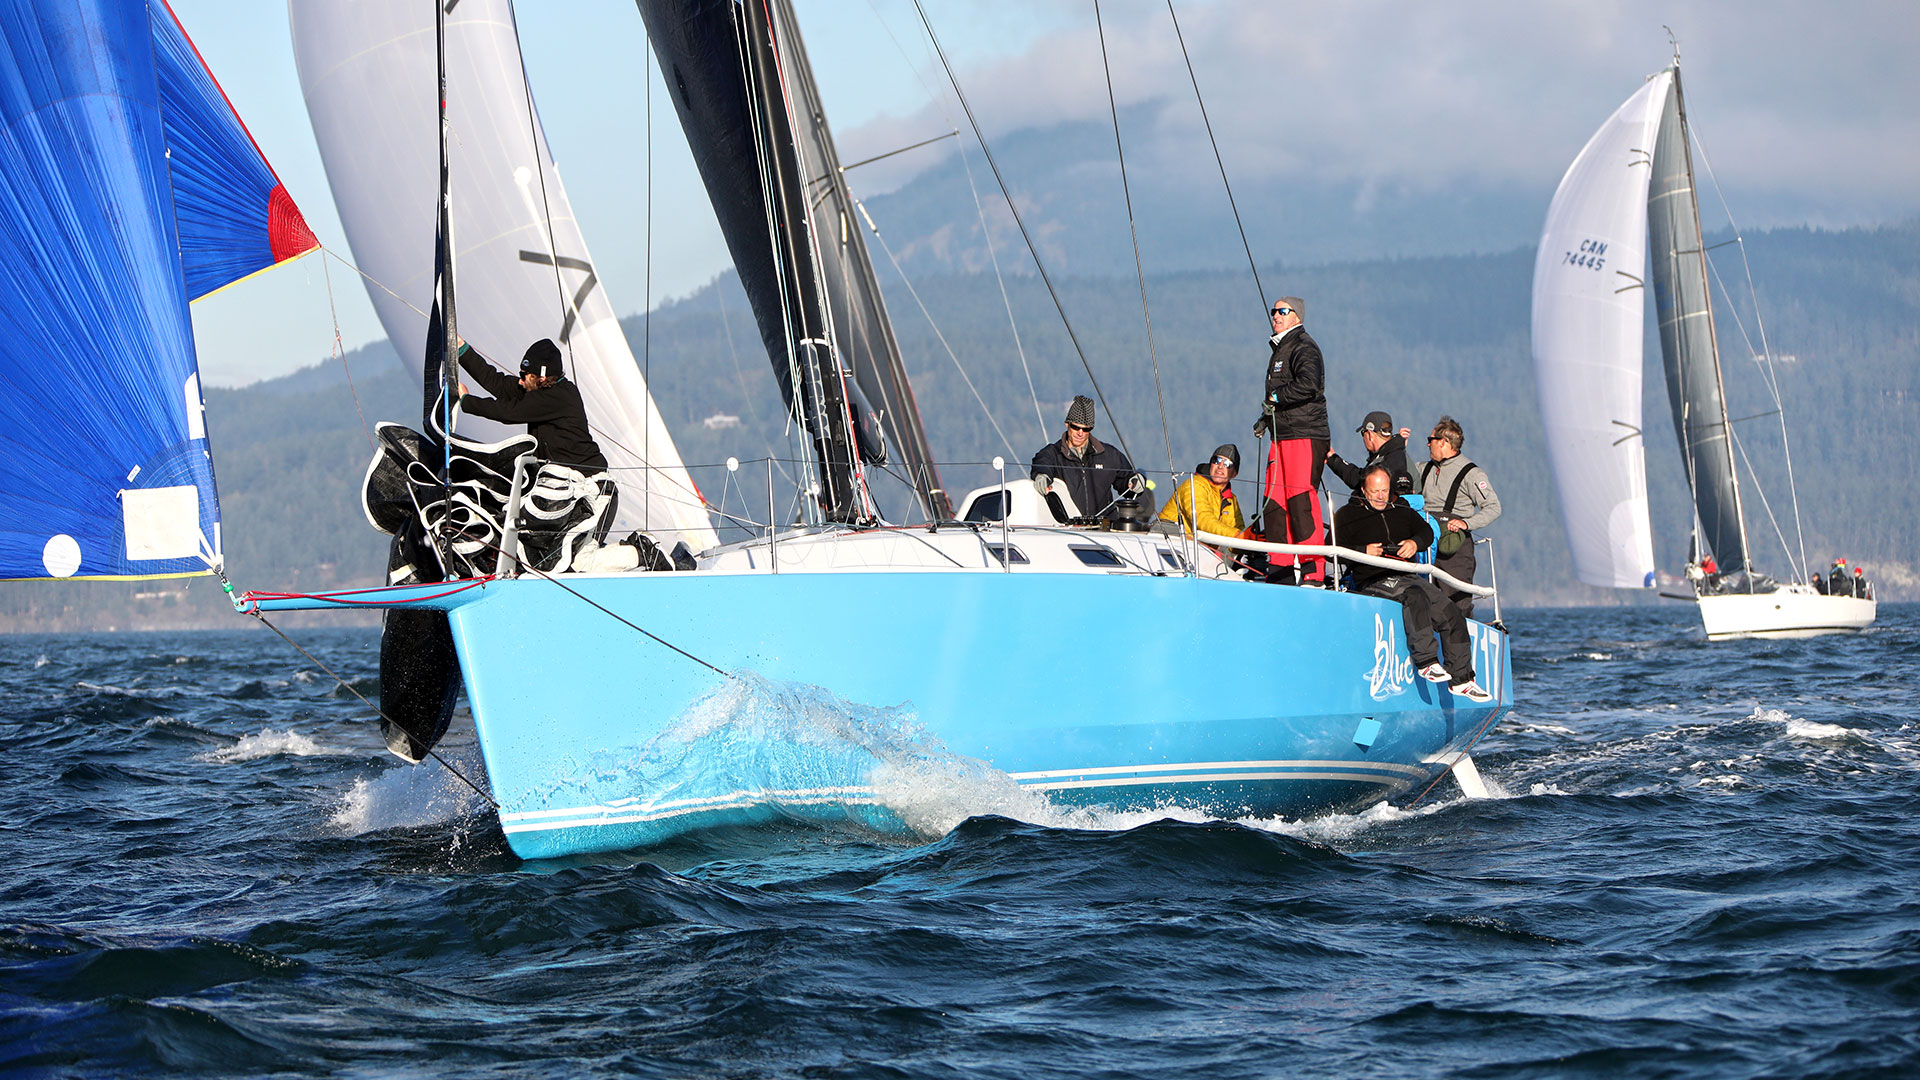 Riptide 41, Blue is headed for Hawaii